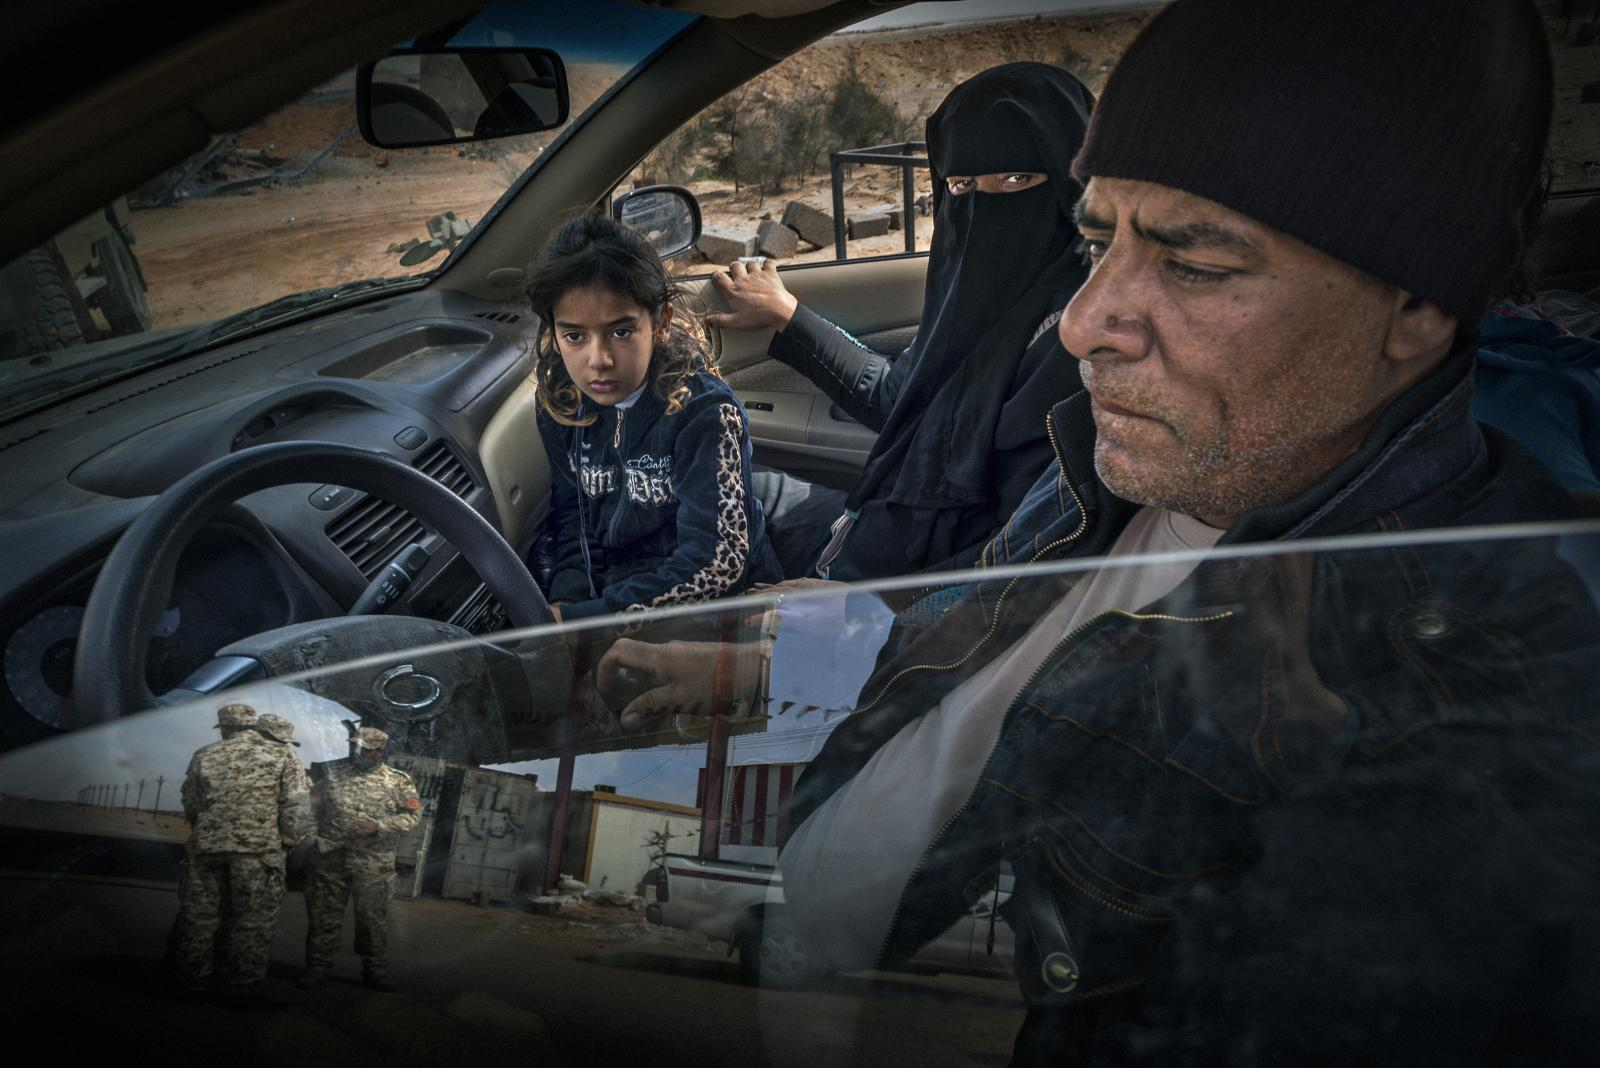 Family in a car from Sirte, at that time under ISIS control, at a military police and Brigade 166 checkpoint in Abu Grein. ISIS had launched a coordinated attack there involving the Al-Bagla checkpoint that signaled the beginning of the Sirte campaign (Libya, 2016)